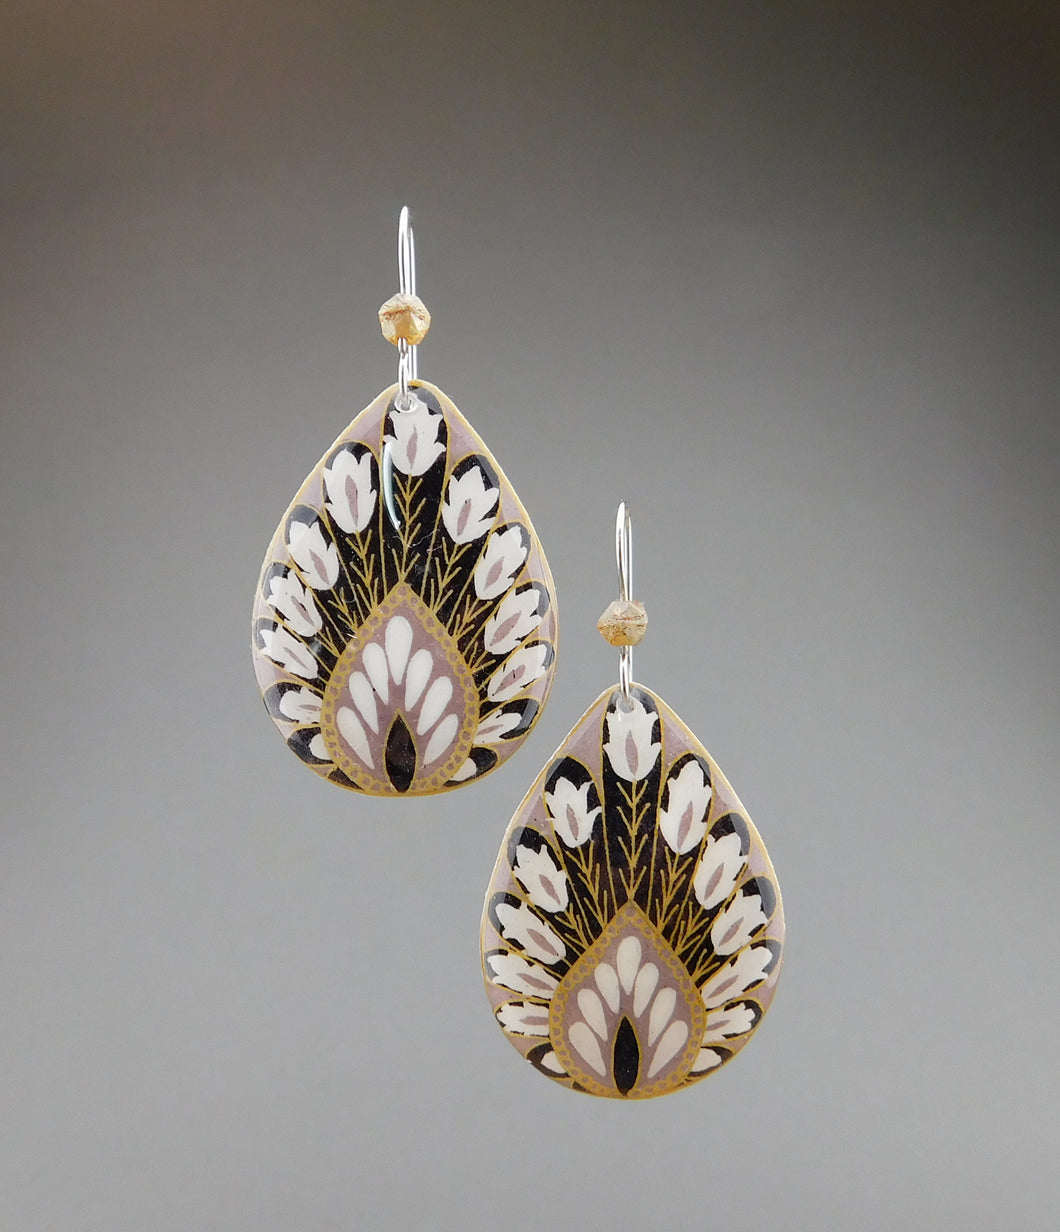 Grey Goose Egg Shell Jewelry - Peacock Earrings